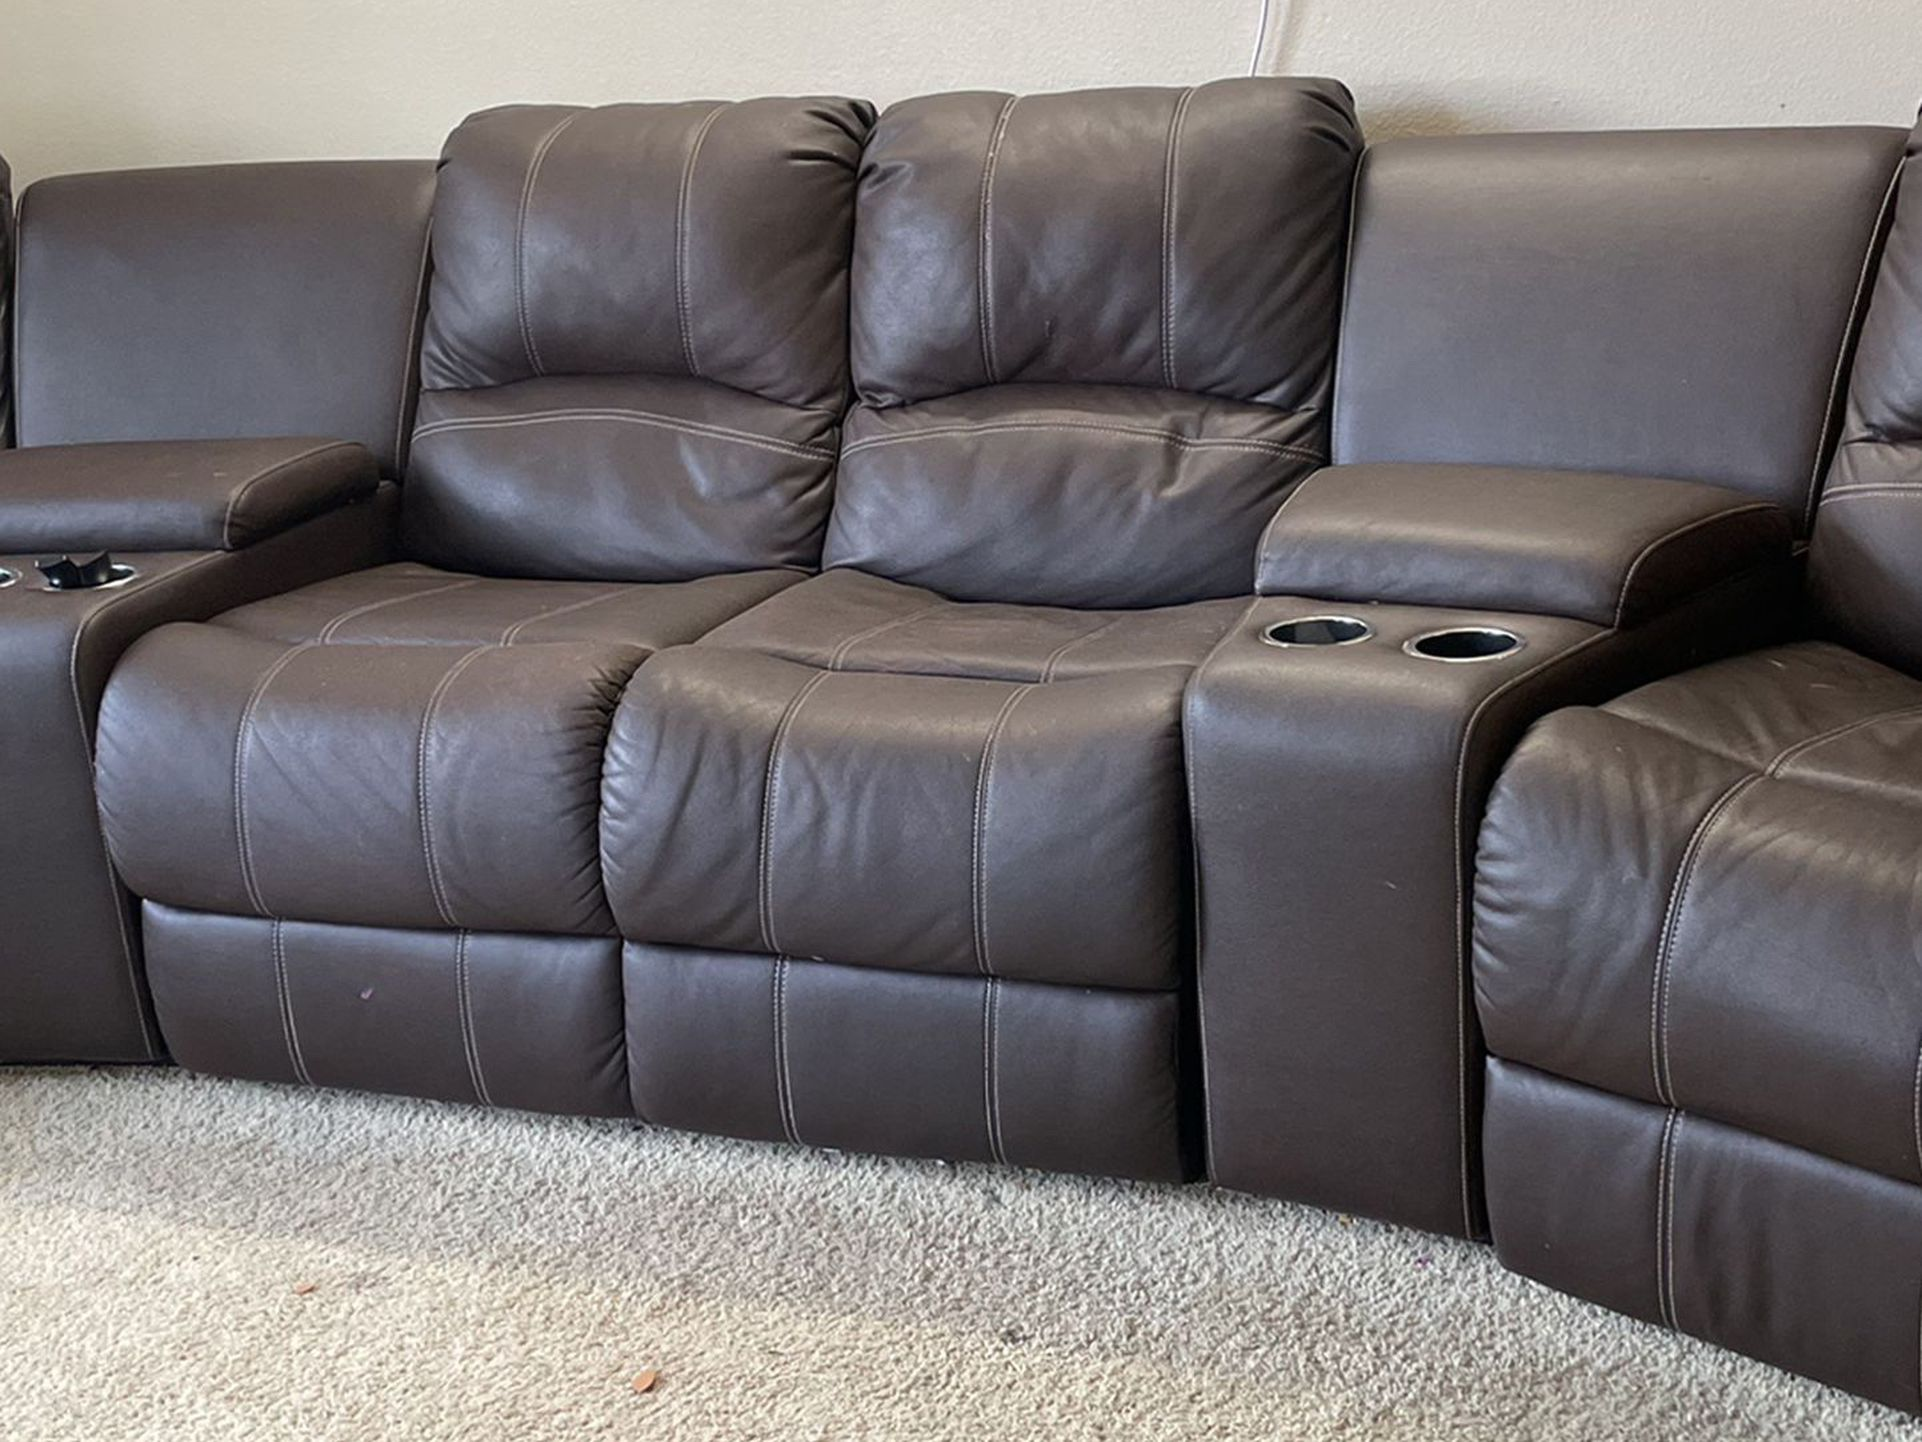 4 Seat Recliner Sofa With console